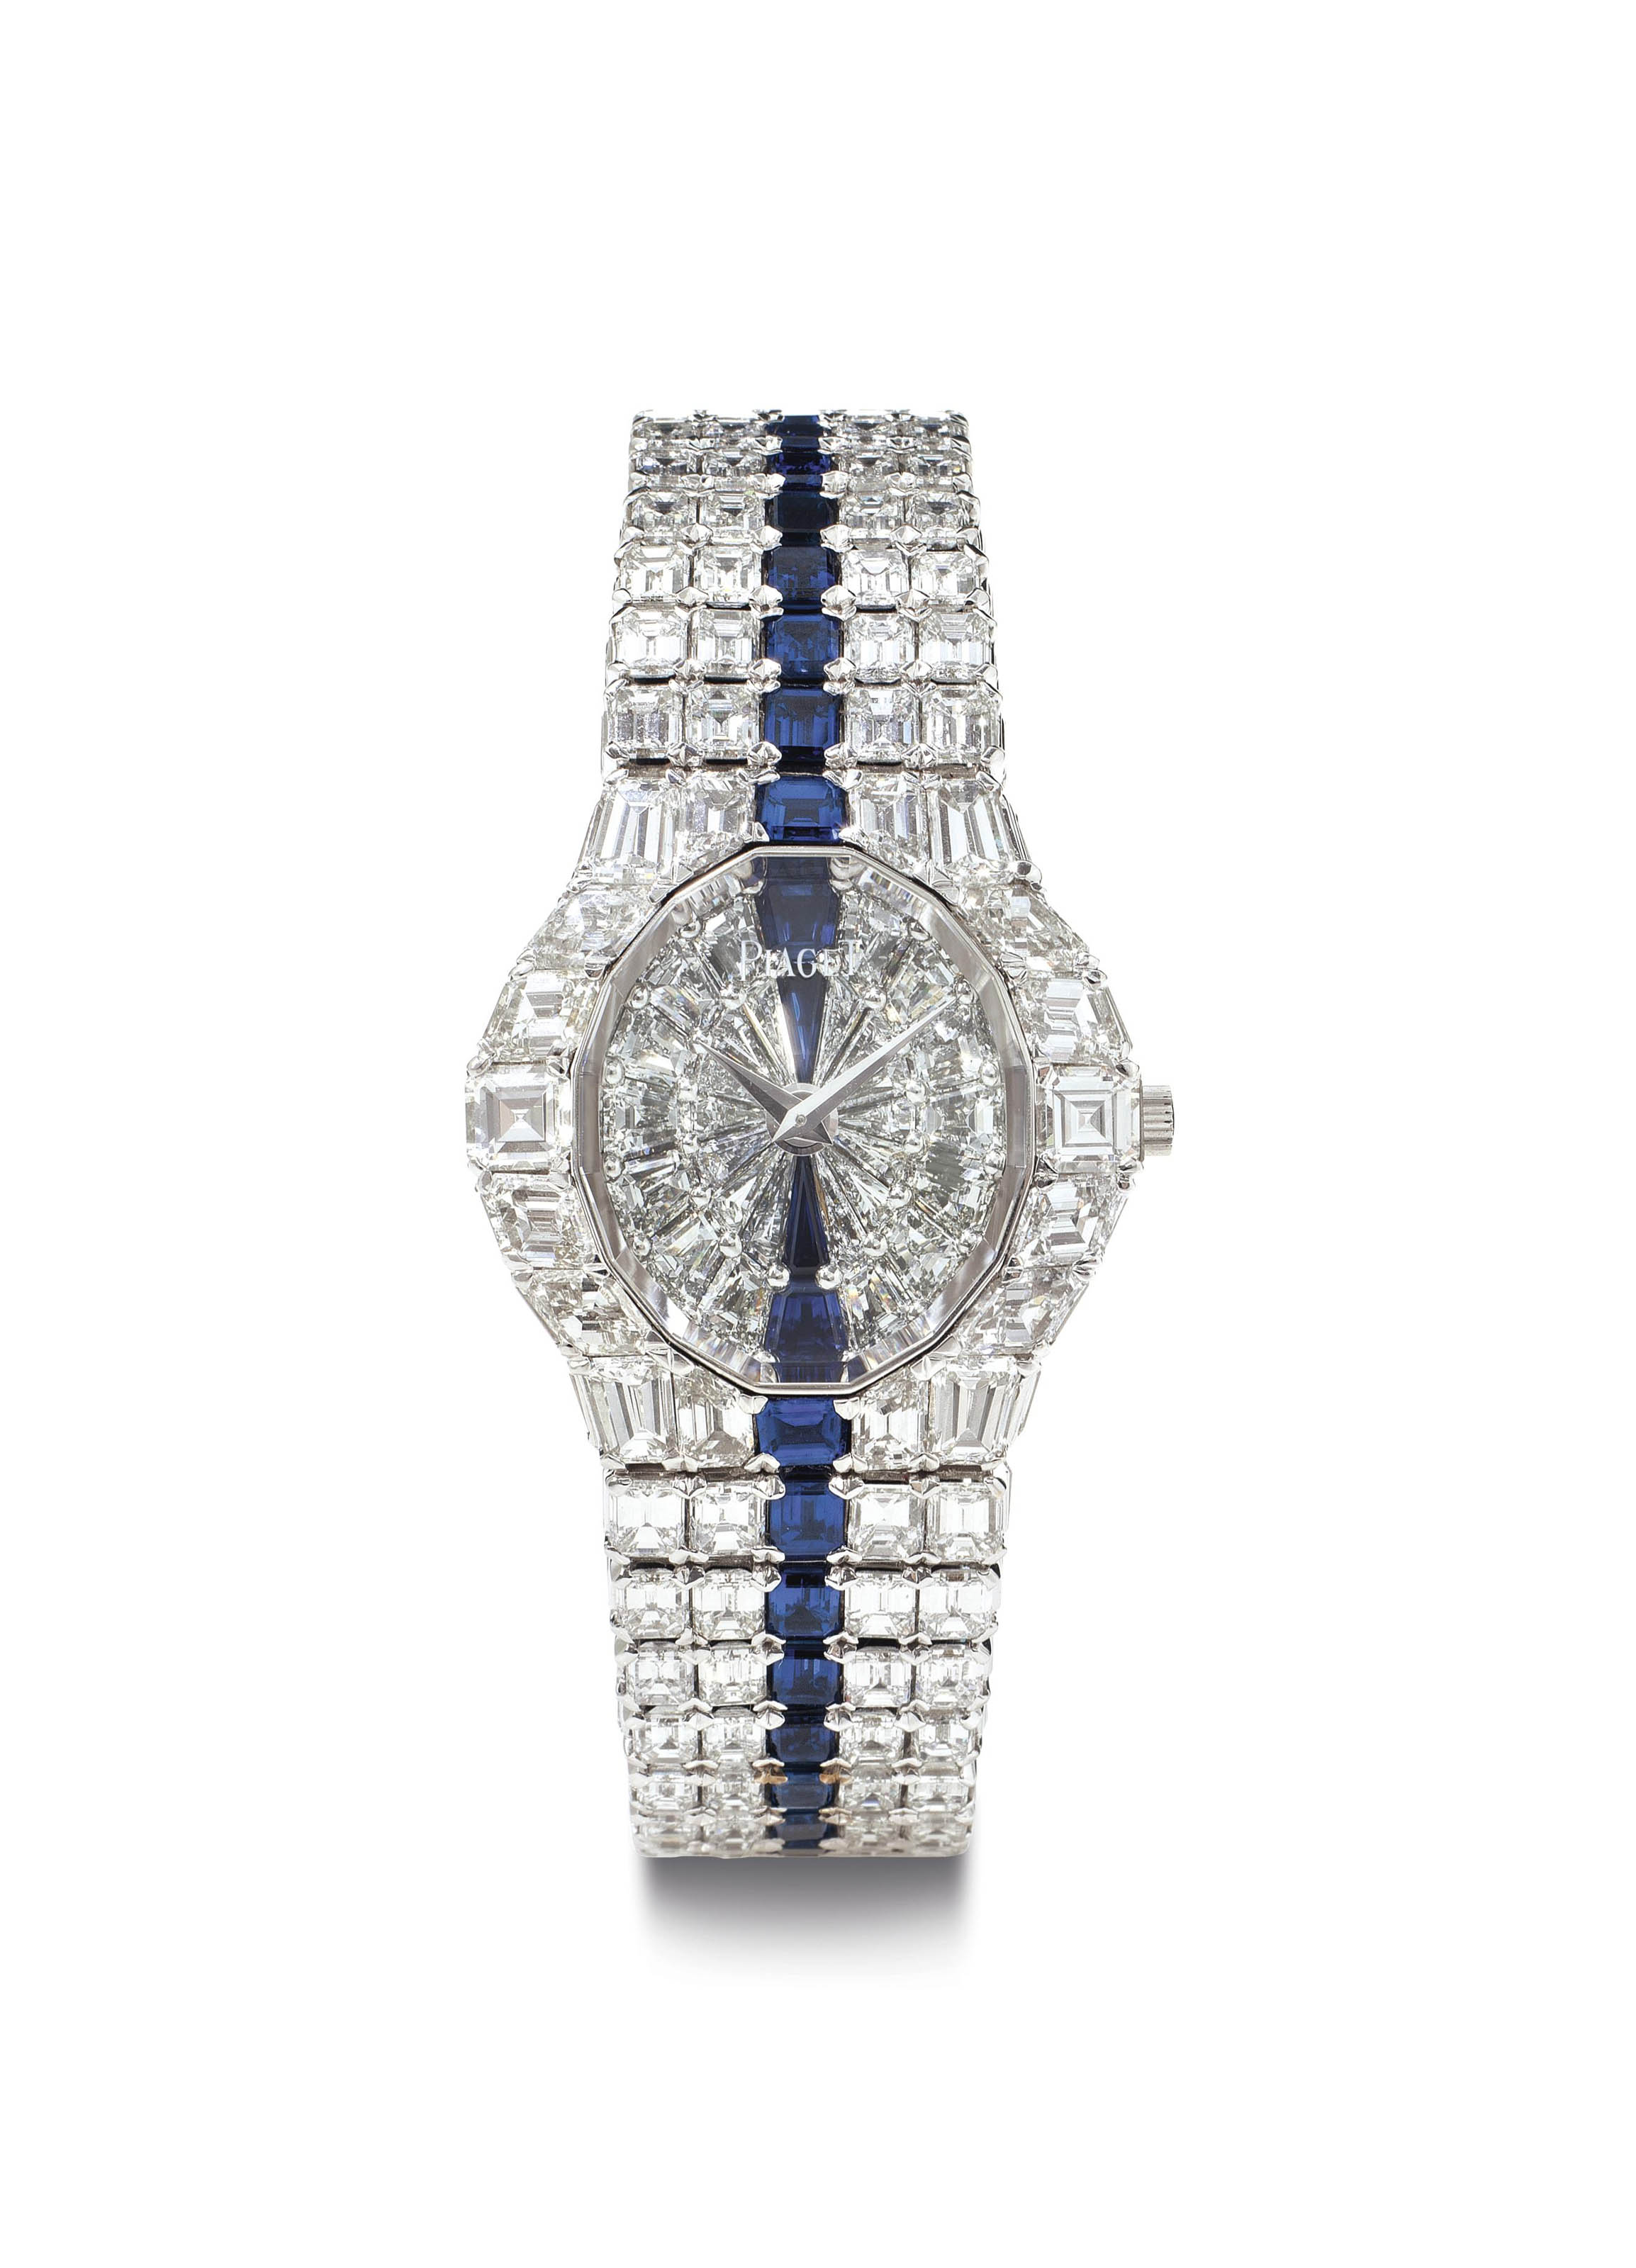 Piaget.  A Large, Superlative and Extremely Rare 18k White Gold, Diamond and Sapphire-set Bracelet Watch